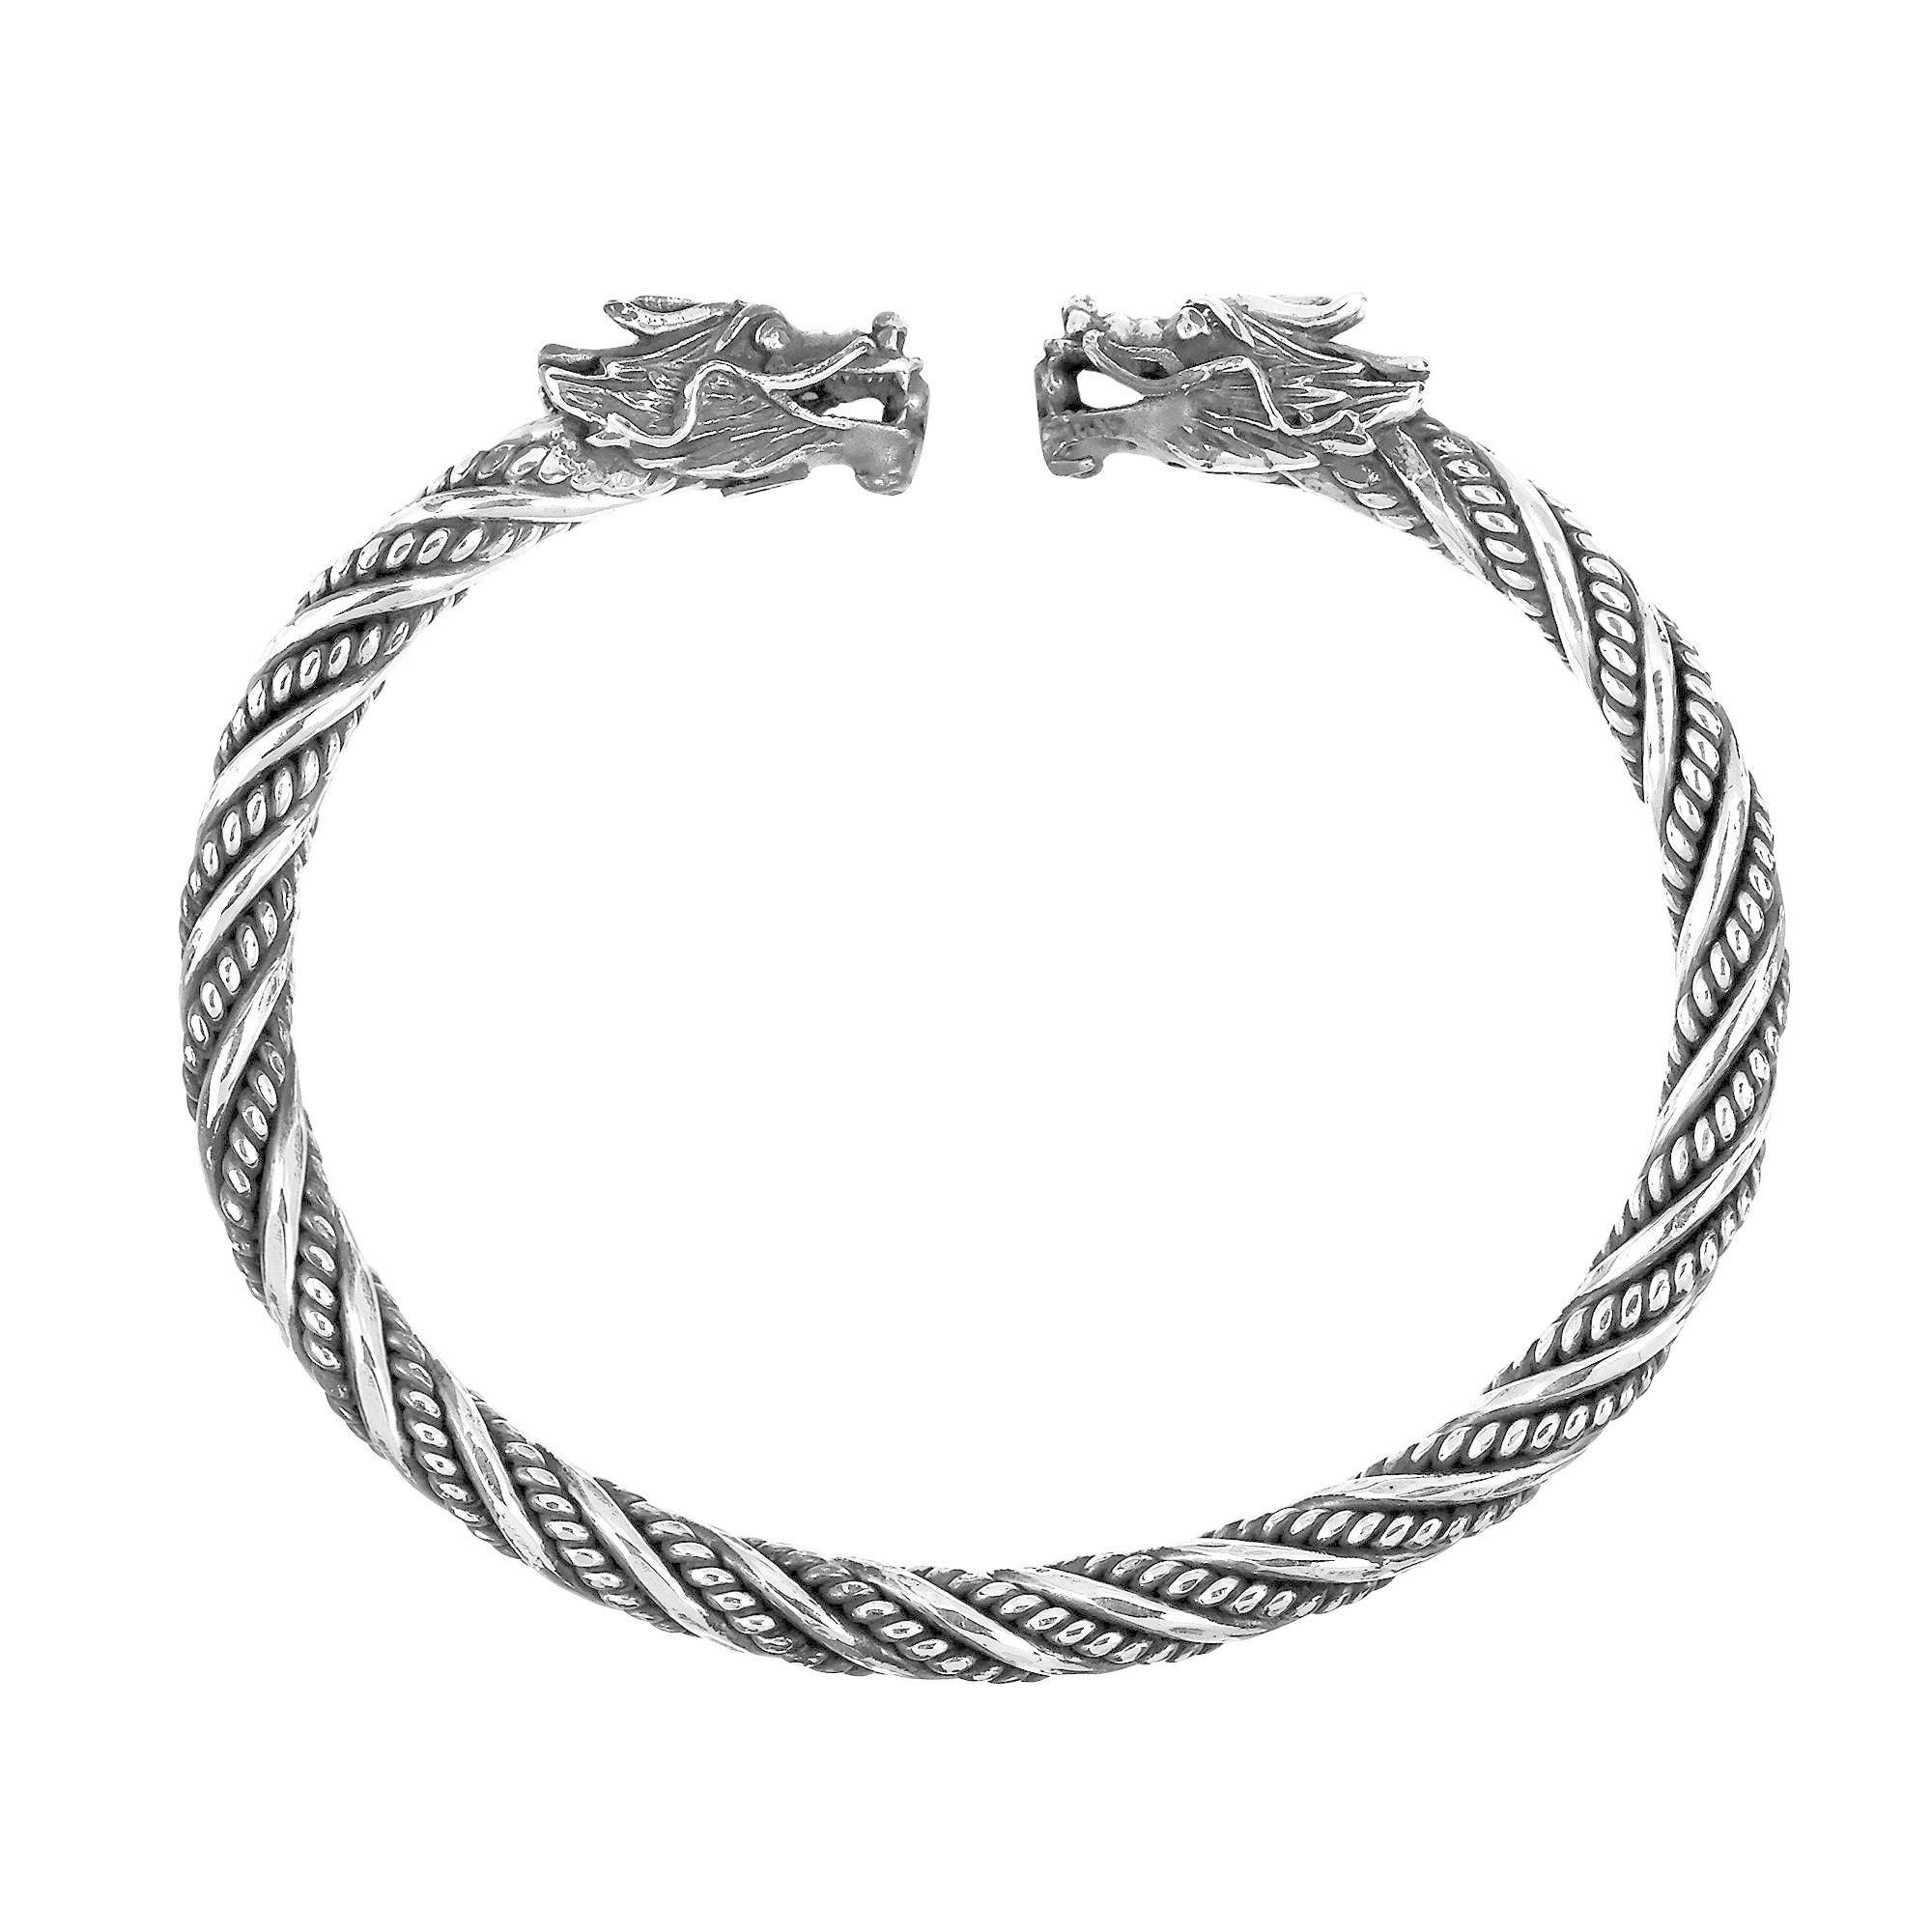 64e4f3d3aac1b Shop Handmade Ancient Double Dragon Head Wrap .925 Sterling Silver Cuff  Bracelet (Thailand) - On Sale - Free Shipping Today - Overstock - 9527200